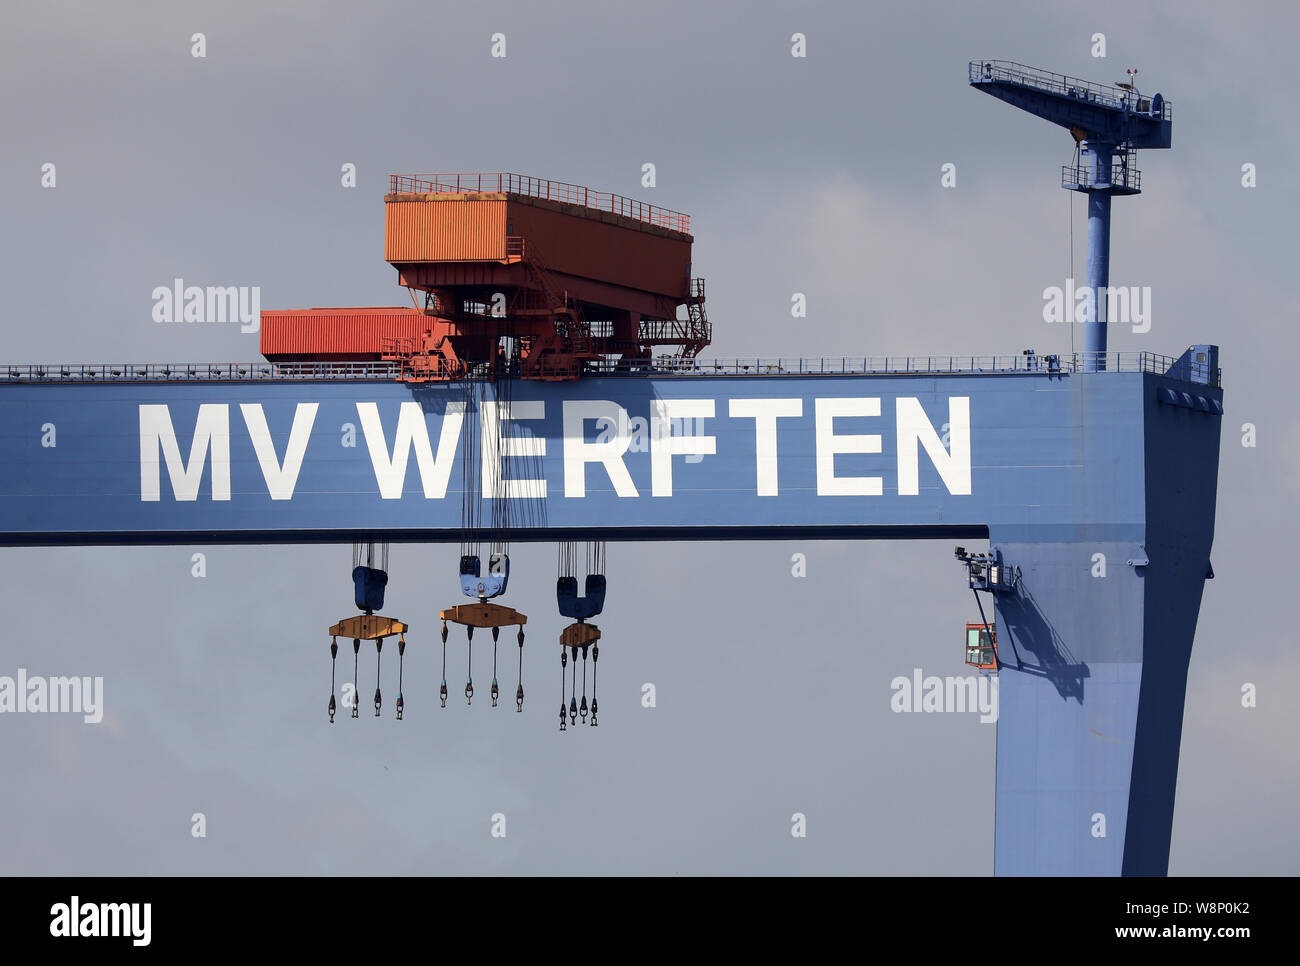 Gantry Crane Shipyard Shipbuilding Stock Photos & Gantry